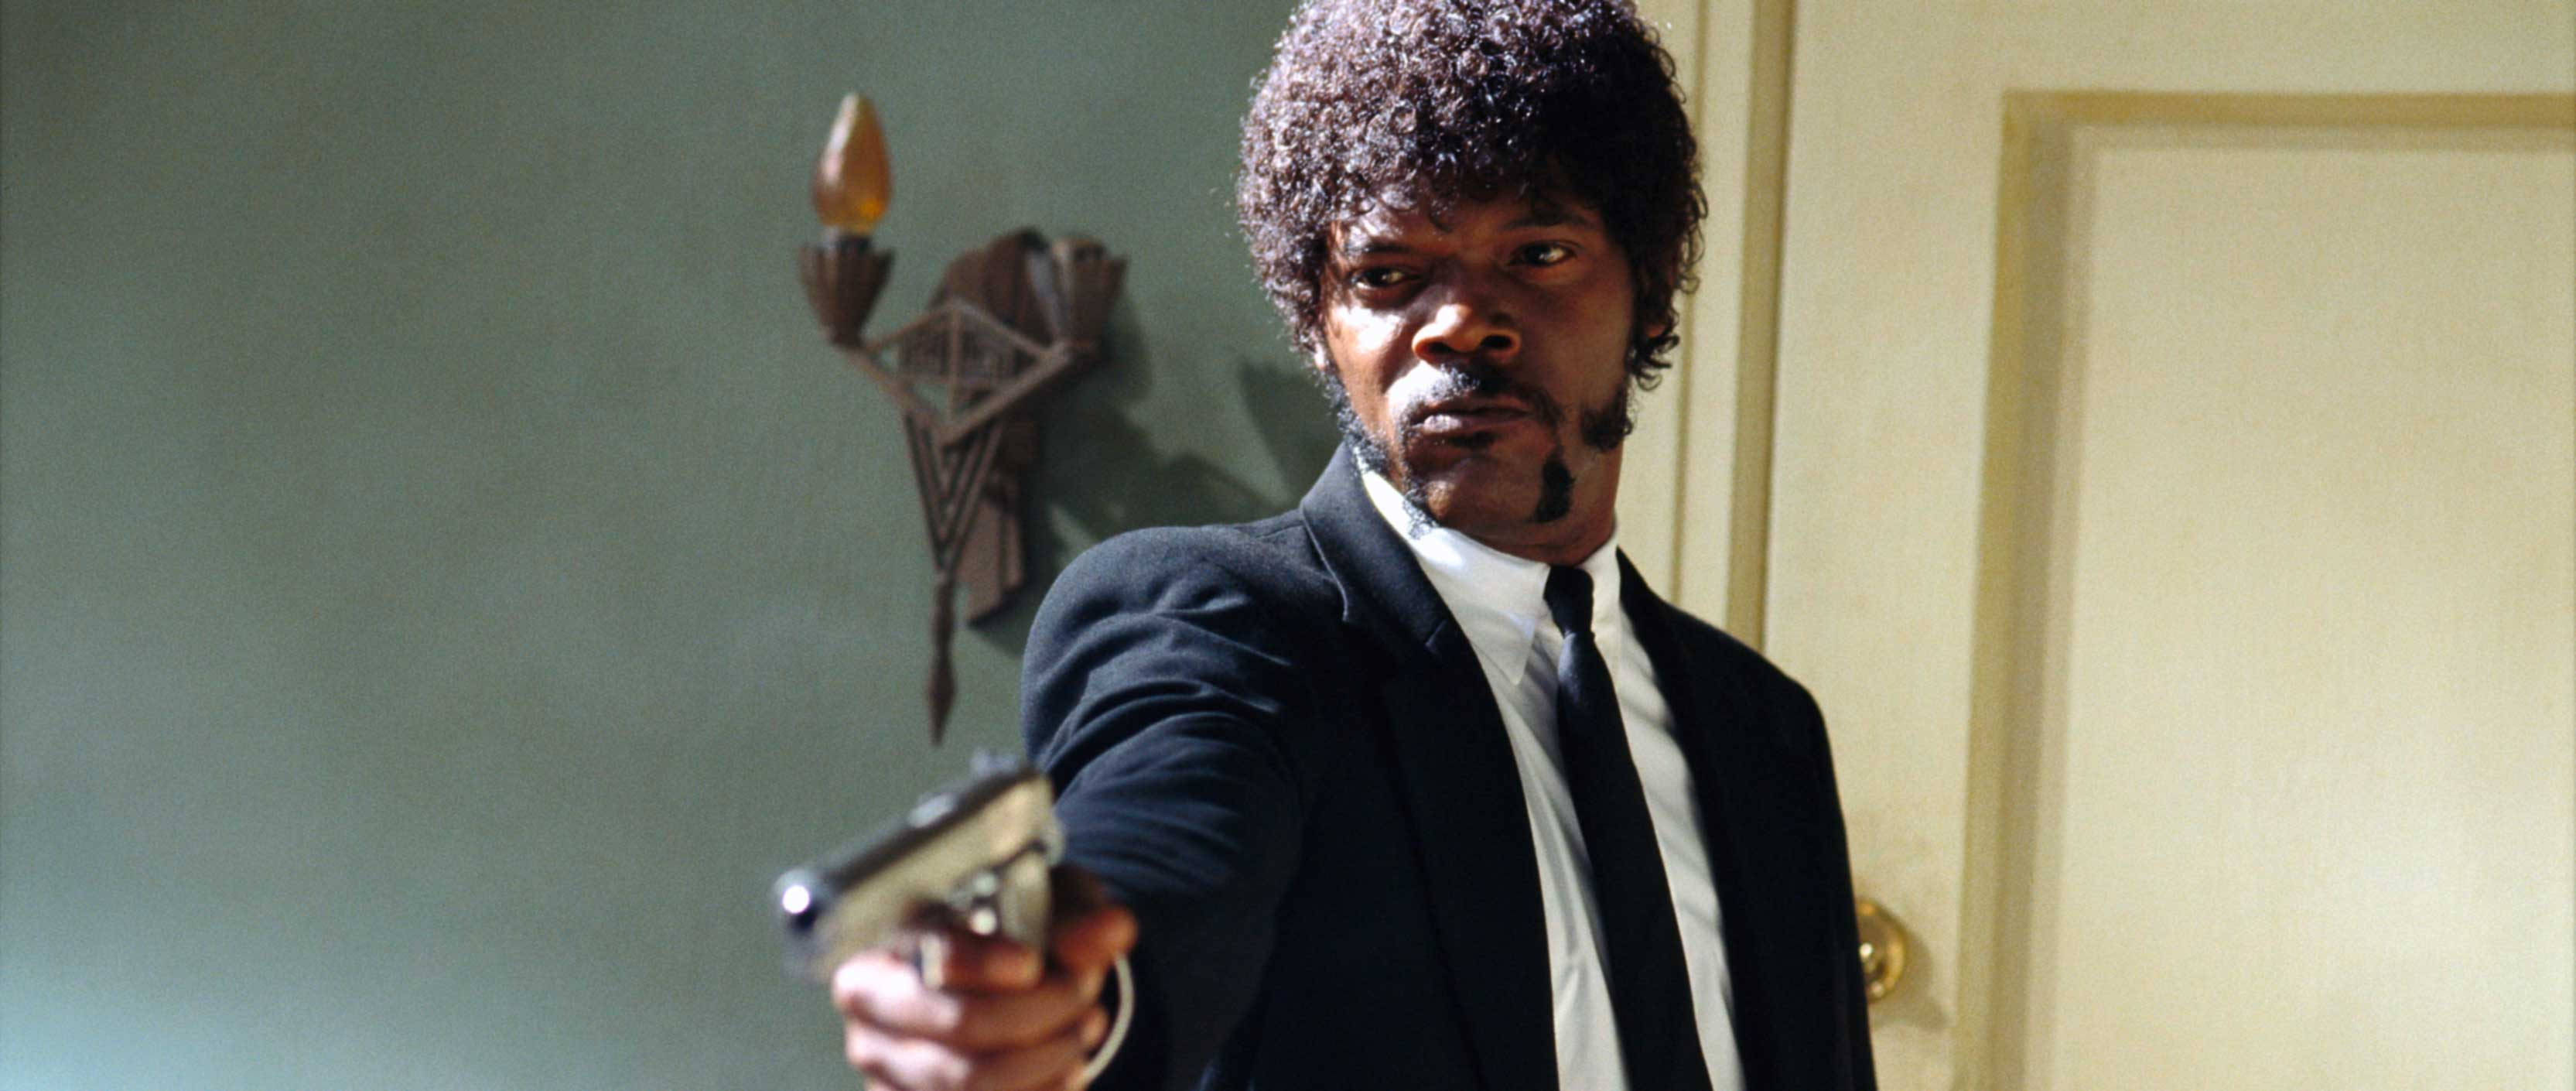 """an analysis of the controversial film pulp fiction directed by quentin tarantino Uma thurman quentin tarantino kill bill  acting (even well-directed acting,  presumably) just can't deliver  tarantino's third film, """"jackie brown,"""" offers up  another strong heroine in the form of pam grier's eponymous flight attendant   an idea thurman first hit upon while they were making """"pulp fiction."""